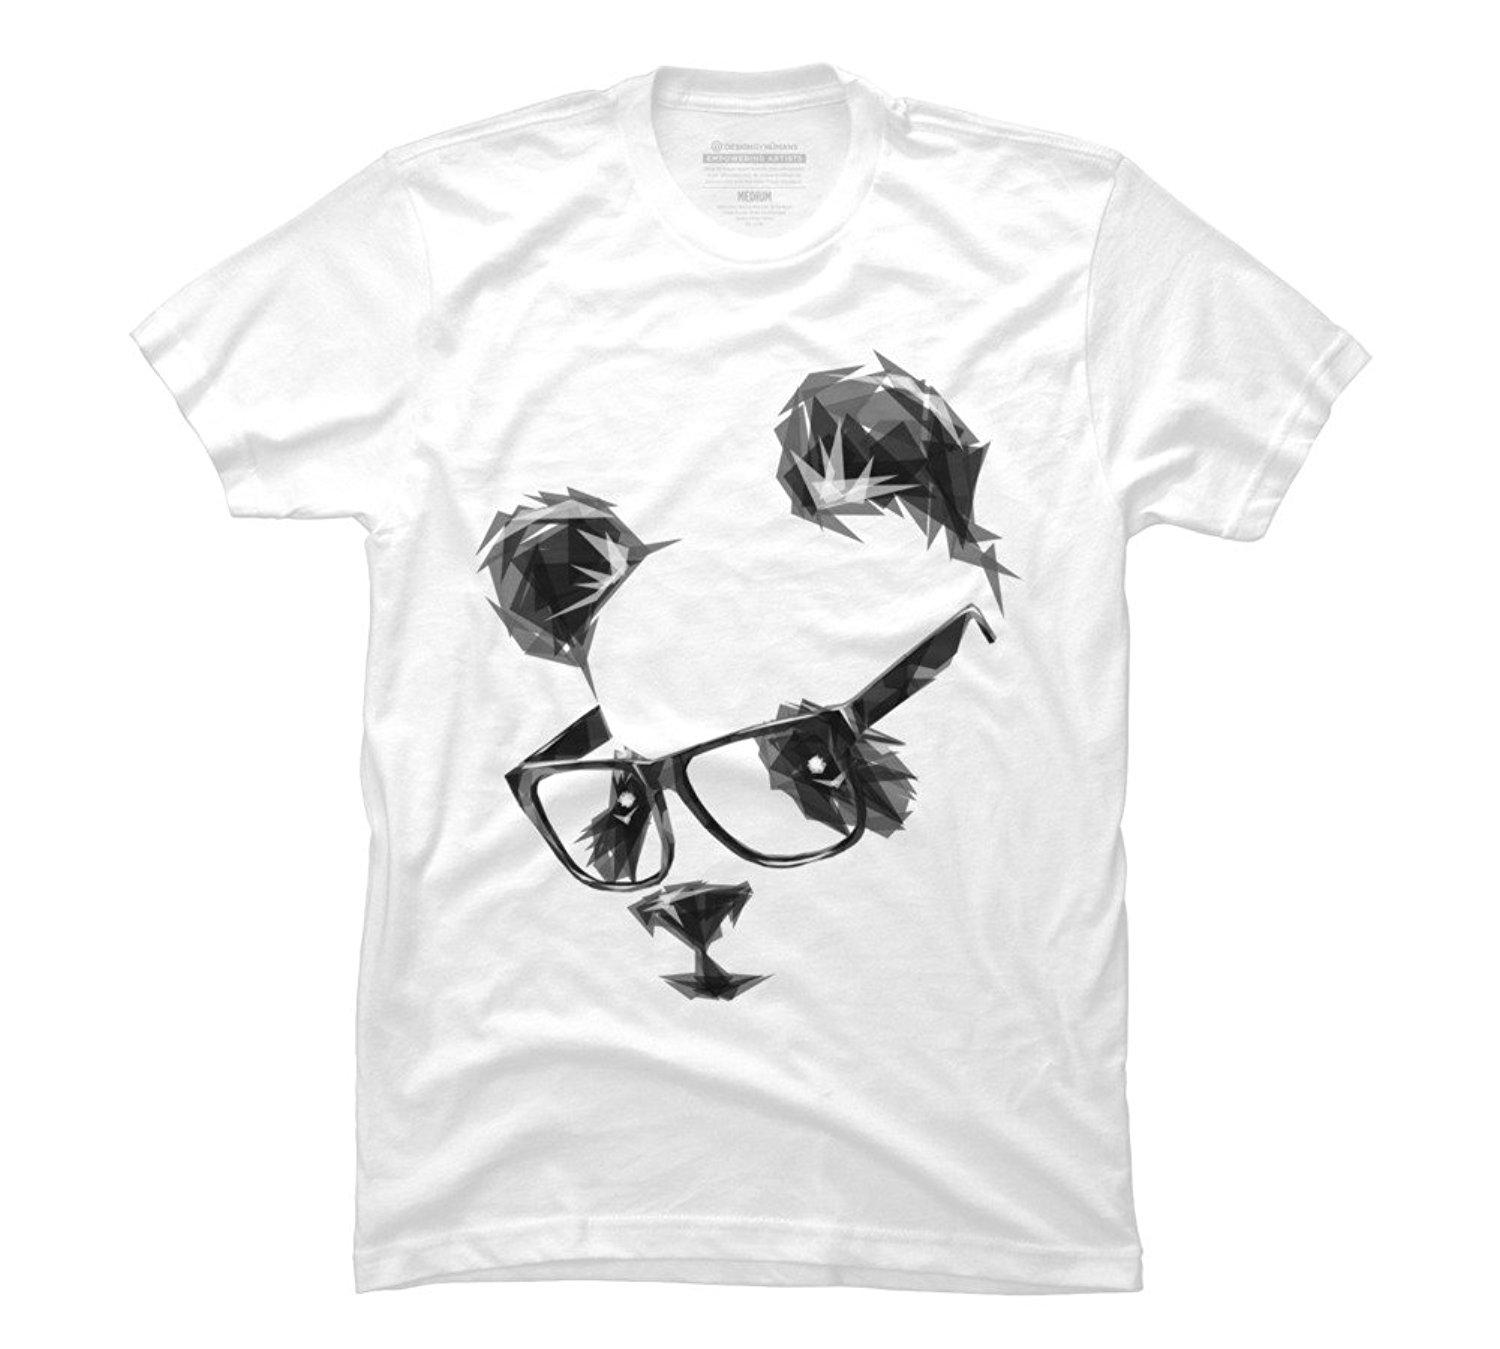 4ac8af7b277 Cool Panda Men s Graphic T Shirt - Design By Humans 100% Cotton T-Shirts  Brand Clothing Tops Tees Customize Plus Size